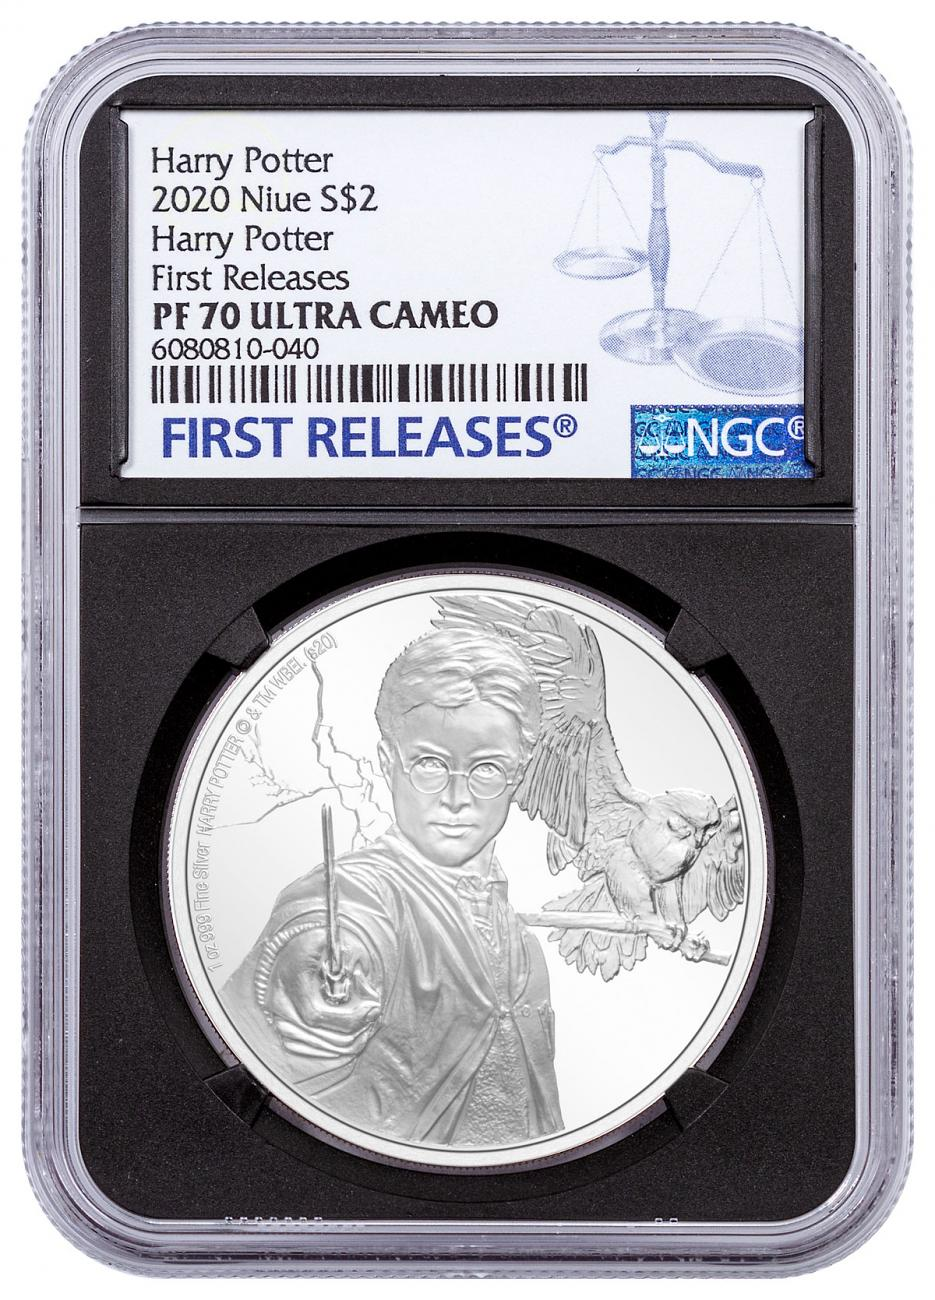 2020 Niue Harry Potter Classics - Harry Potter 1 oz Silver Proof $2 Coin NGC PF70 UC FR Black Core Holder